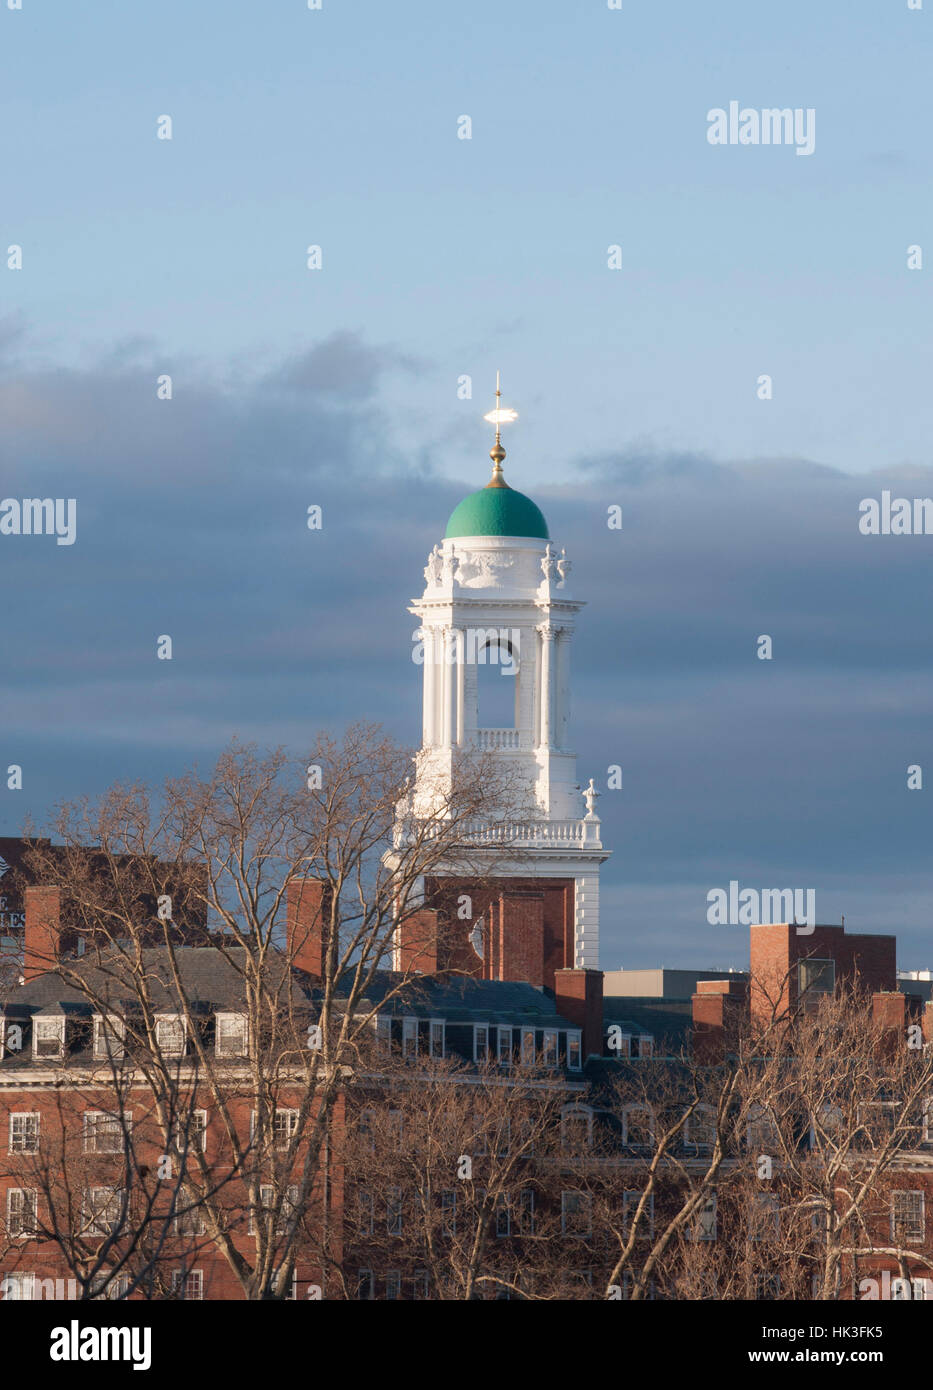 Eliot House bell tower in Harvard University, Cambridge, Massachusetts - Stock Image